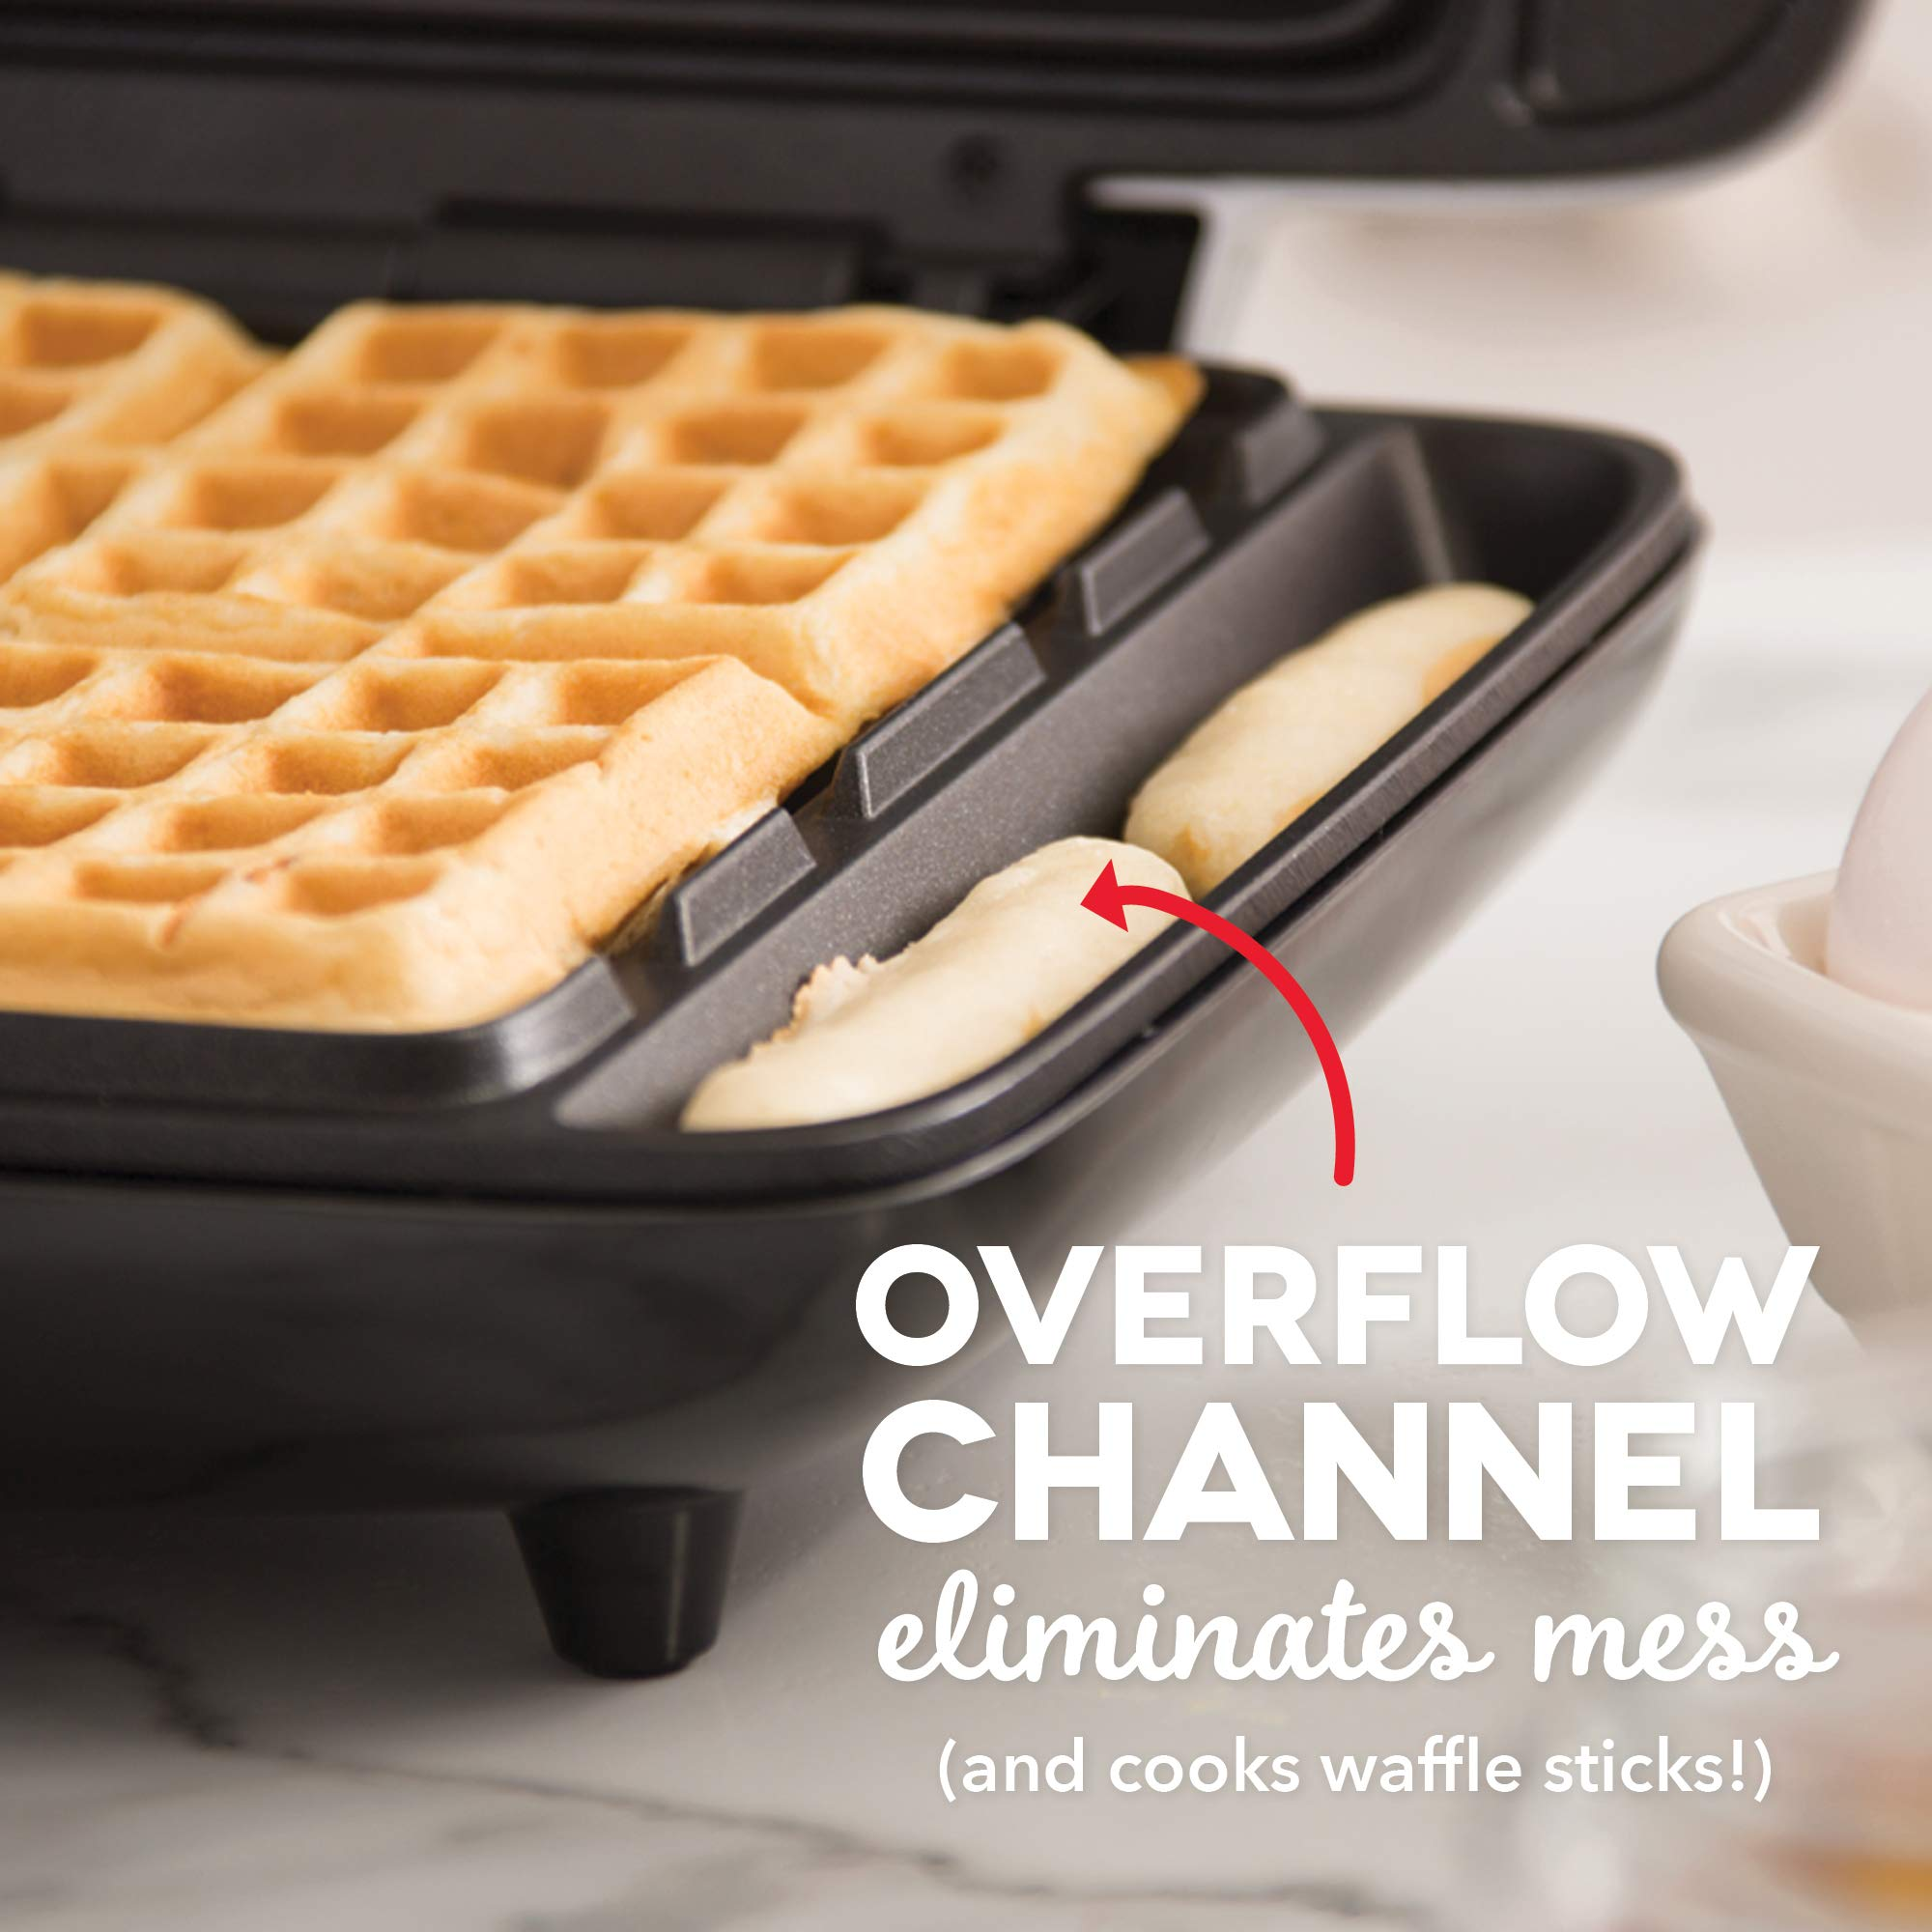 Dash DNMWM455RD Deluxe No-Drip Belgian Waffle Maker: Iron 1200W Machine + Hash Browns, or Any Breakfast, Lunch, & Snacks with Easy Clean, Non-Stick + Mess Free Sides, Red